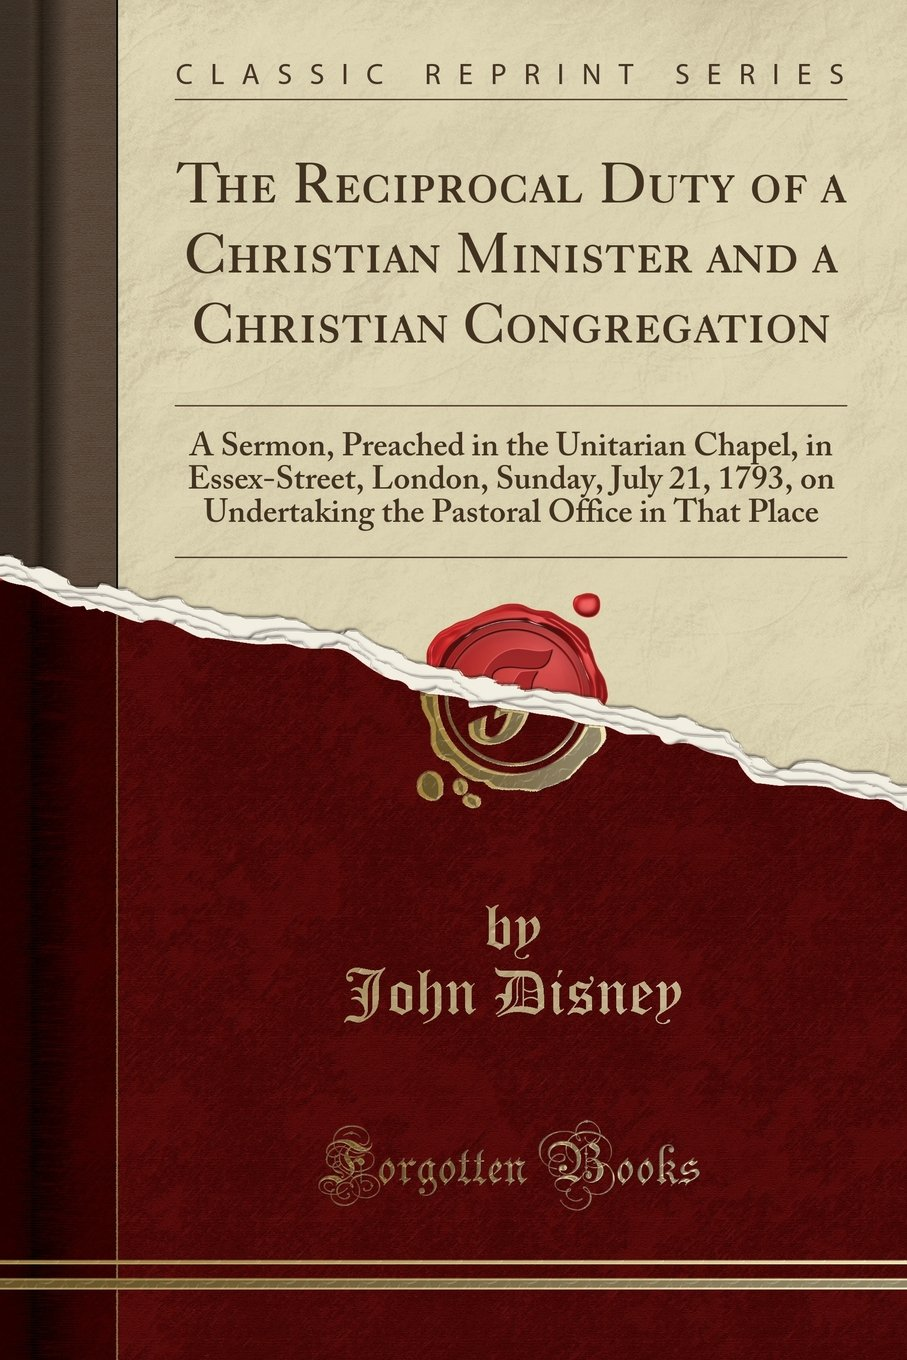 The Reciprocal Duty of a Christian Minister and a Christian Congregation: A Sermon, Preached in the Unitarian Chapel, in Essex-Street, London, Sunday, ... Office in That Place (Classic Reprint)